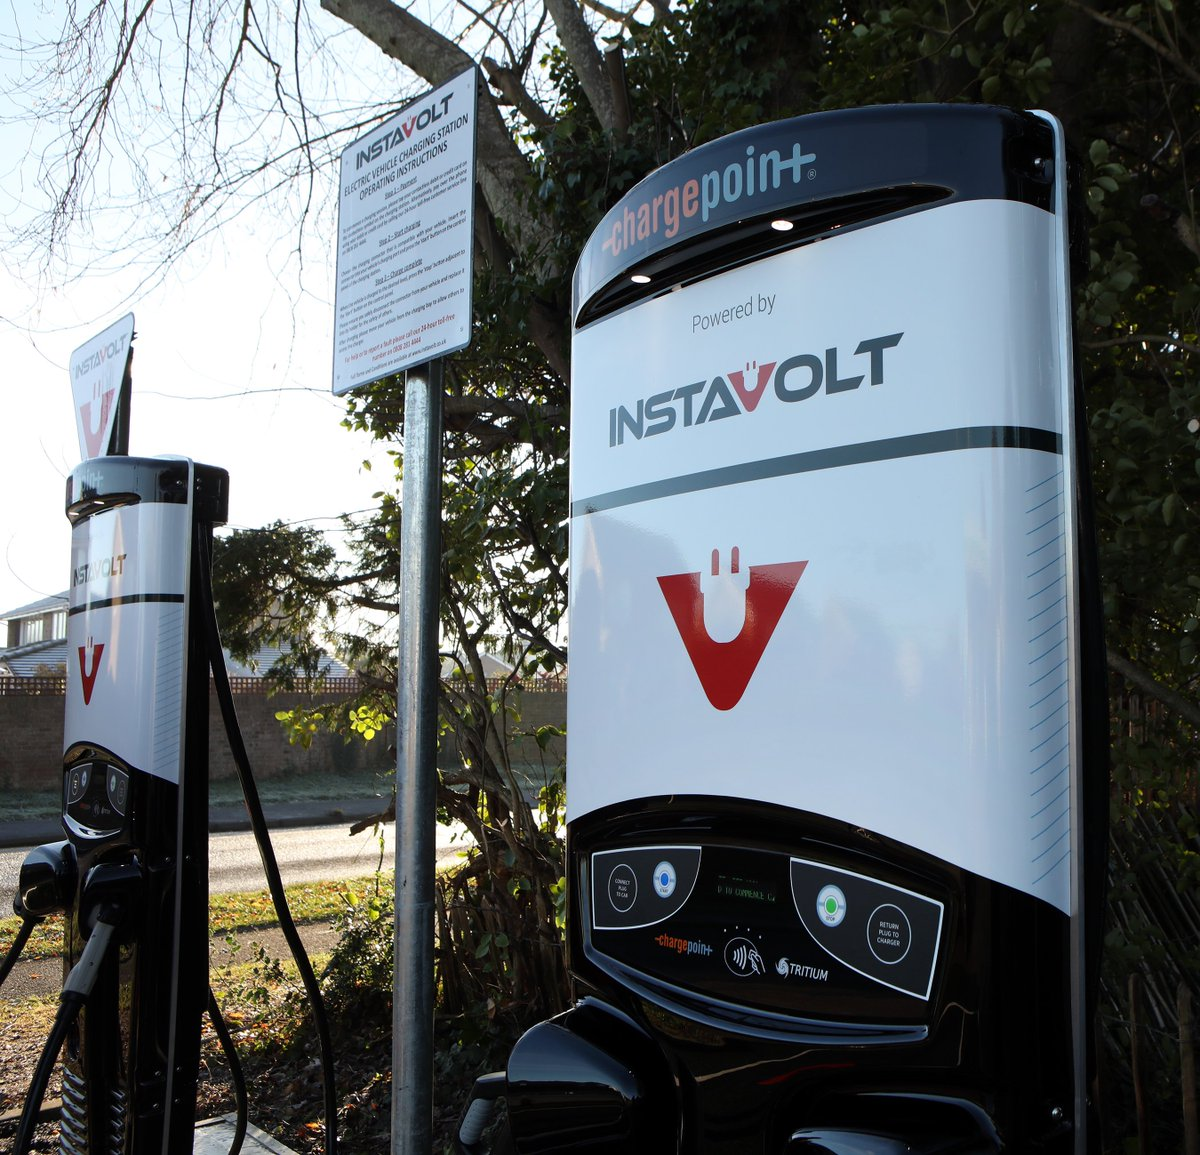 Instavolt Has Topped The User Satisfaction Rankings For Electric Car Charging Networks In Uk That Can Be Used By Multiple Models Of Vehicle